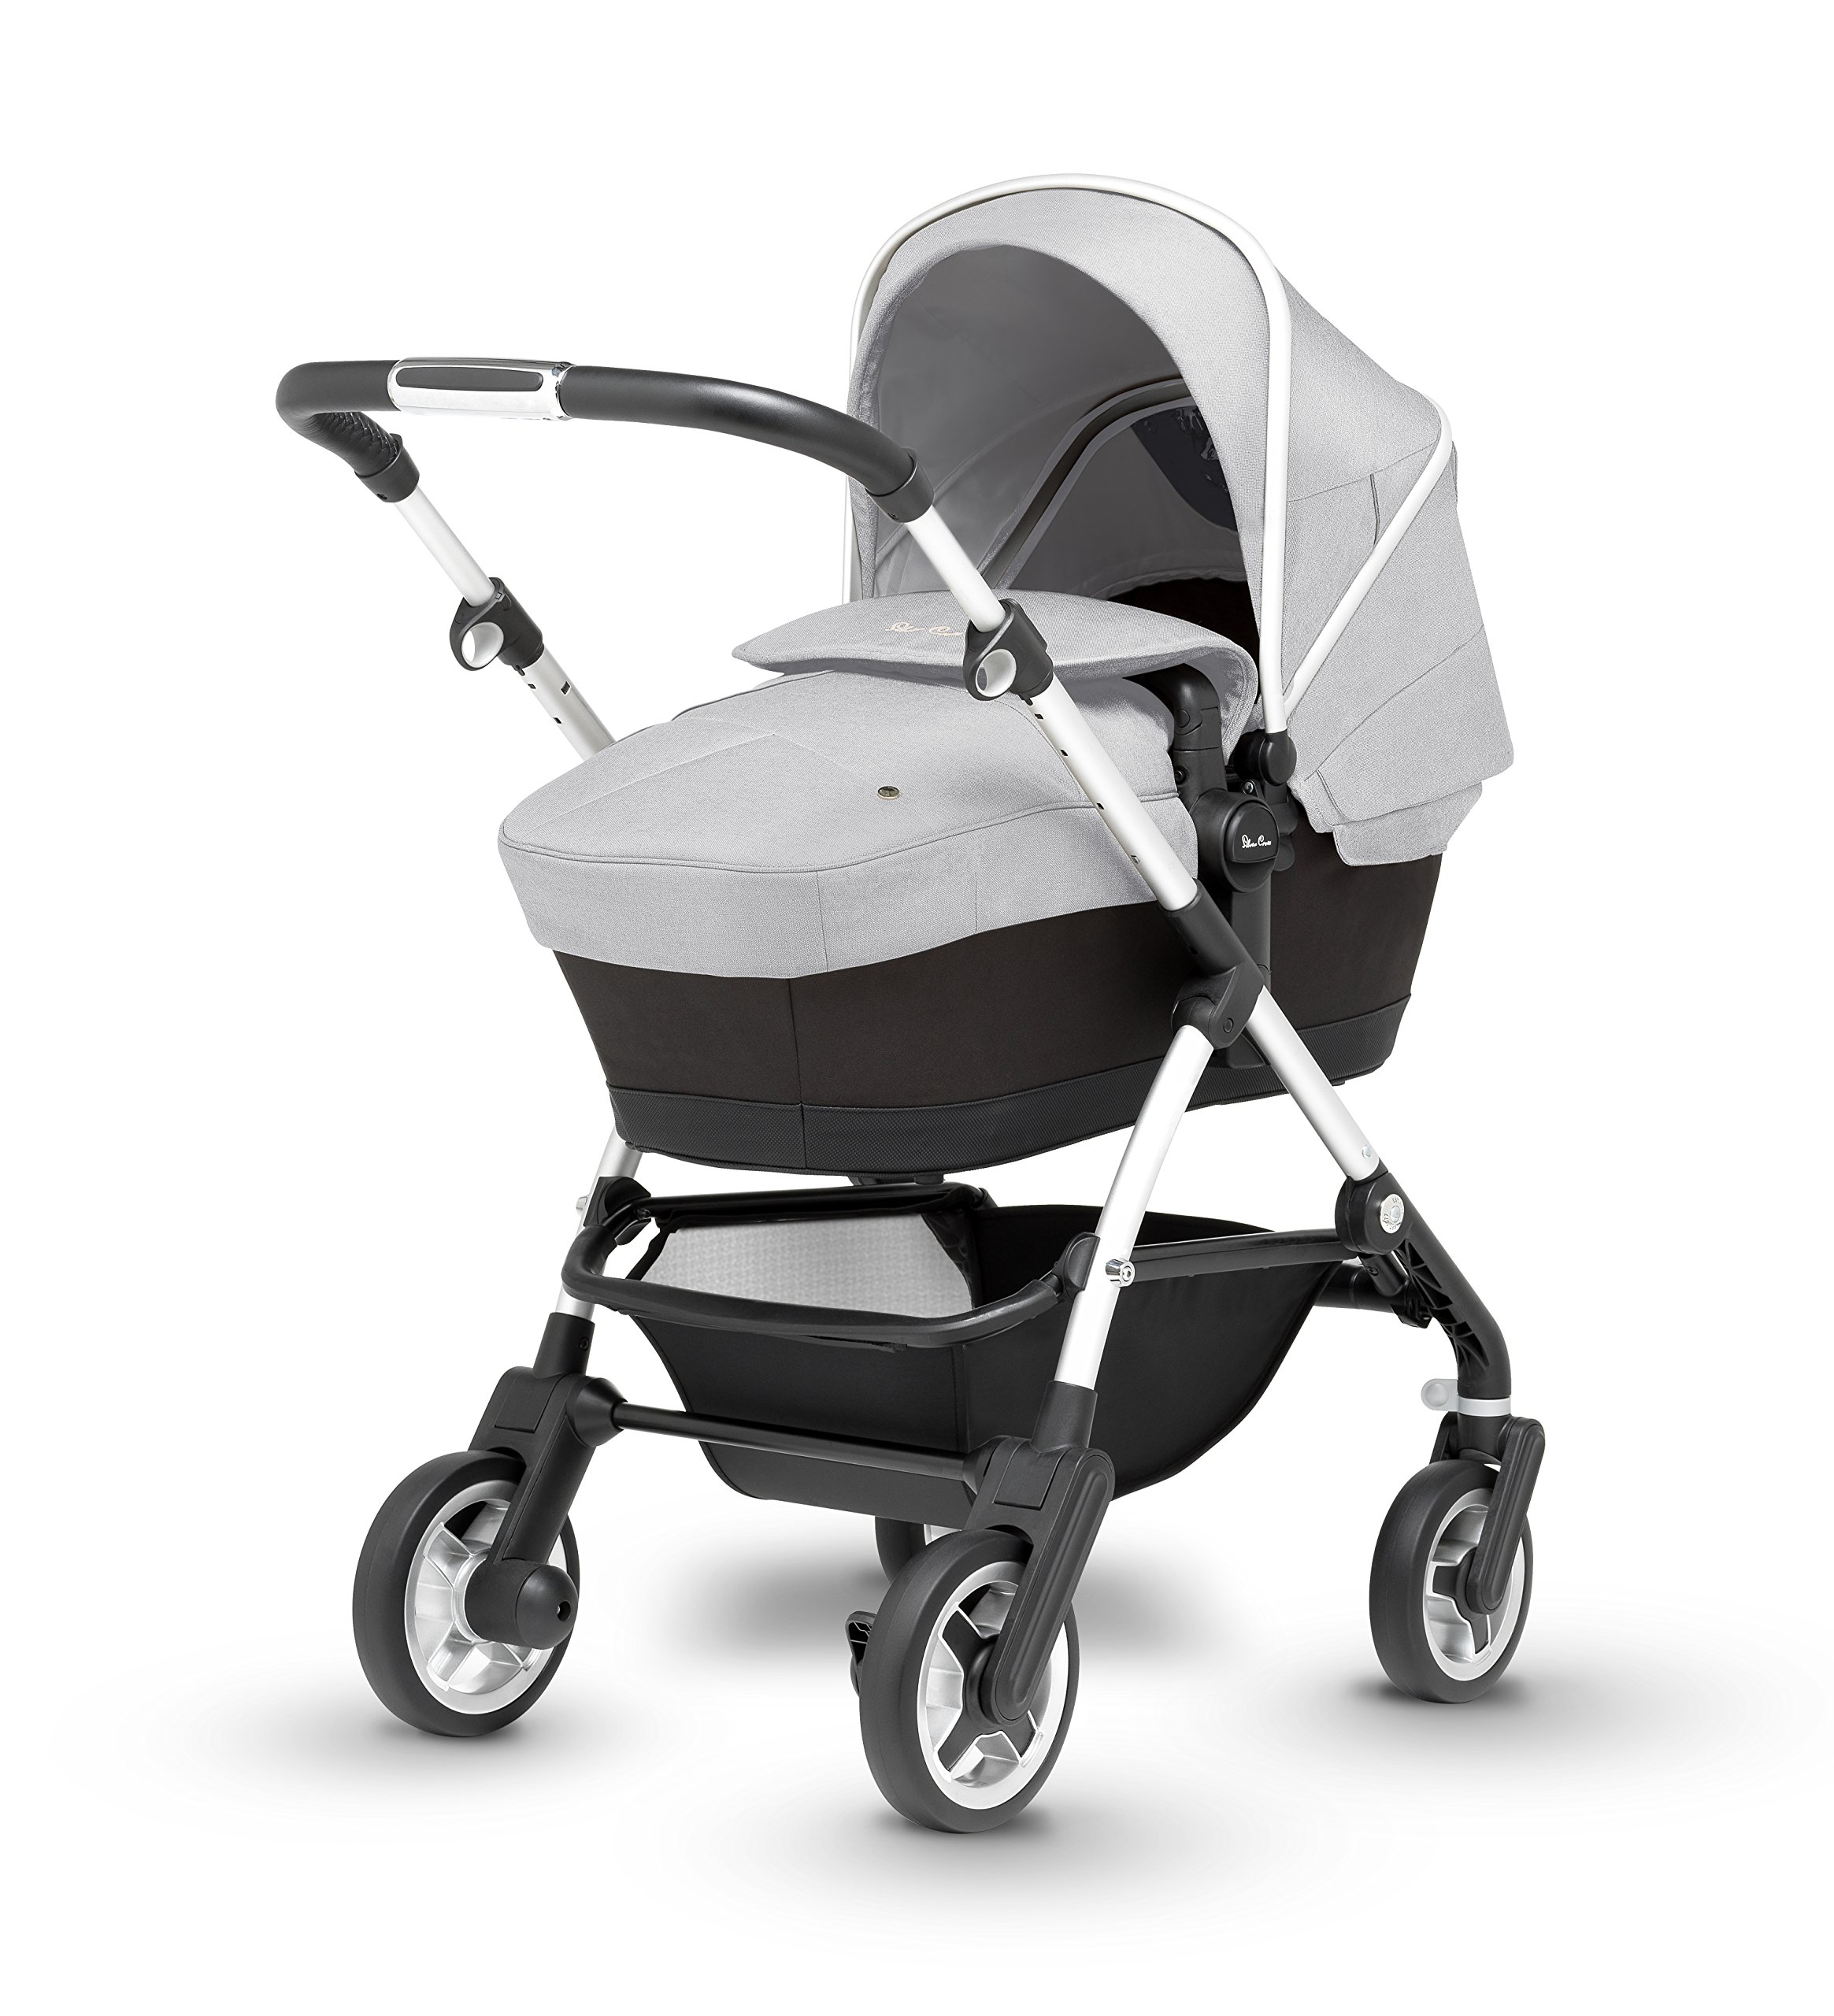 Silver Cross Wayfarer Pushchair and Carrycot, Platinum Silver Cross A complete Pram system that includes everything you need from birth to toddler Includes a lie-flat Carrycot for your new born that is suitable for overnight sleeping Includes a fully, reversible Pushchair seat unit, suitable up to 25kg 3